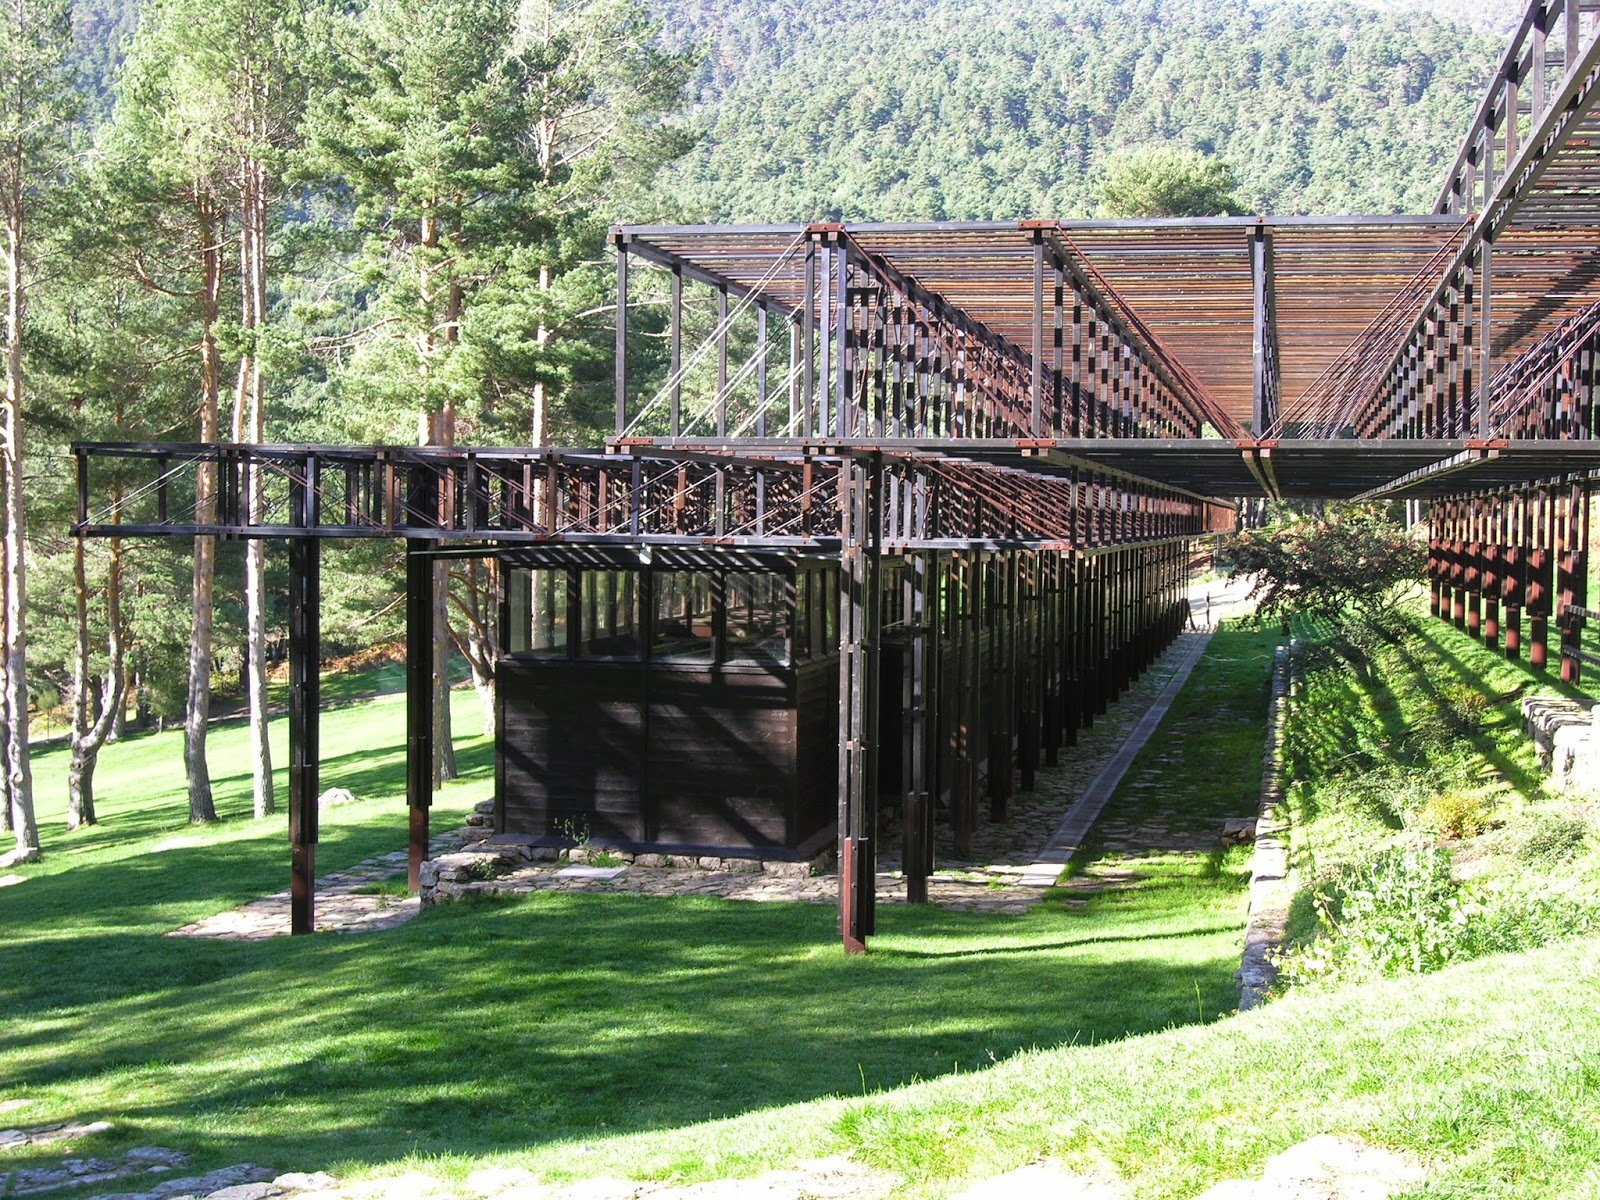 Valle de la fuenfria lo que cercedilla esconde ii el for Piscina que se esconde